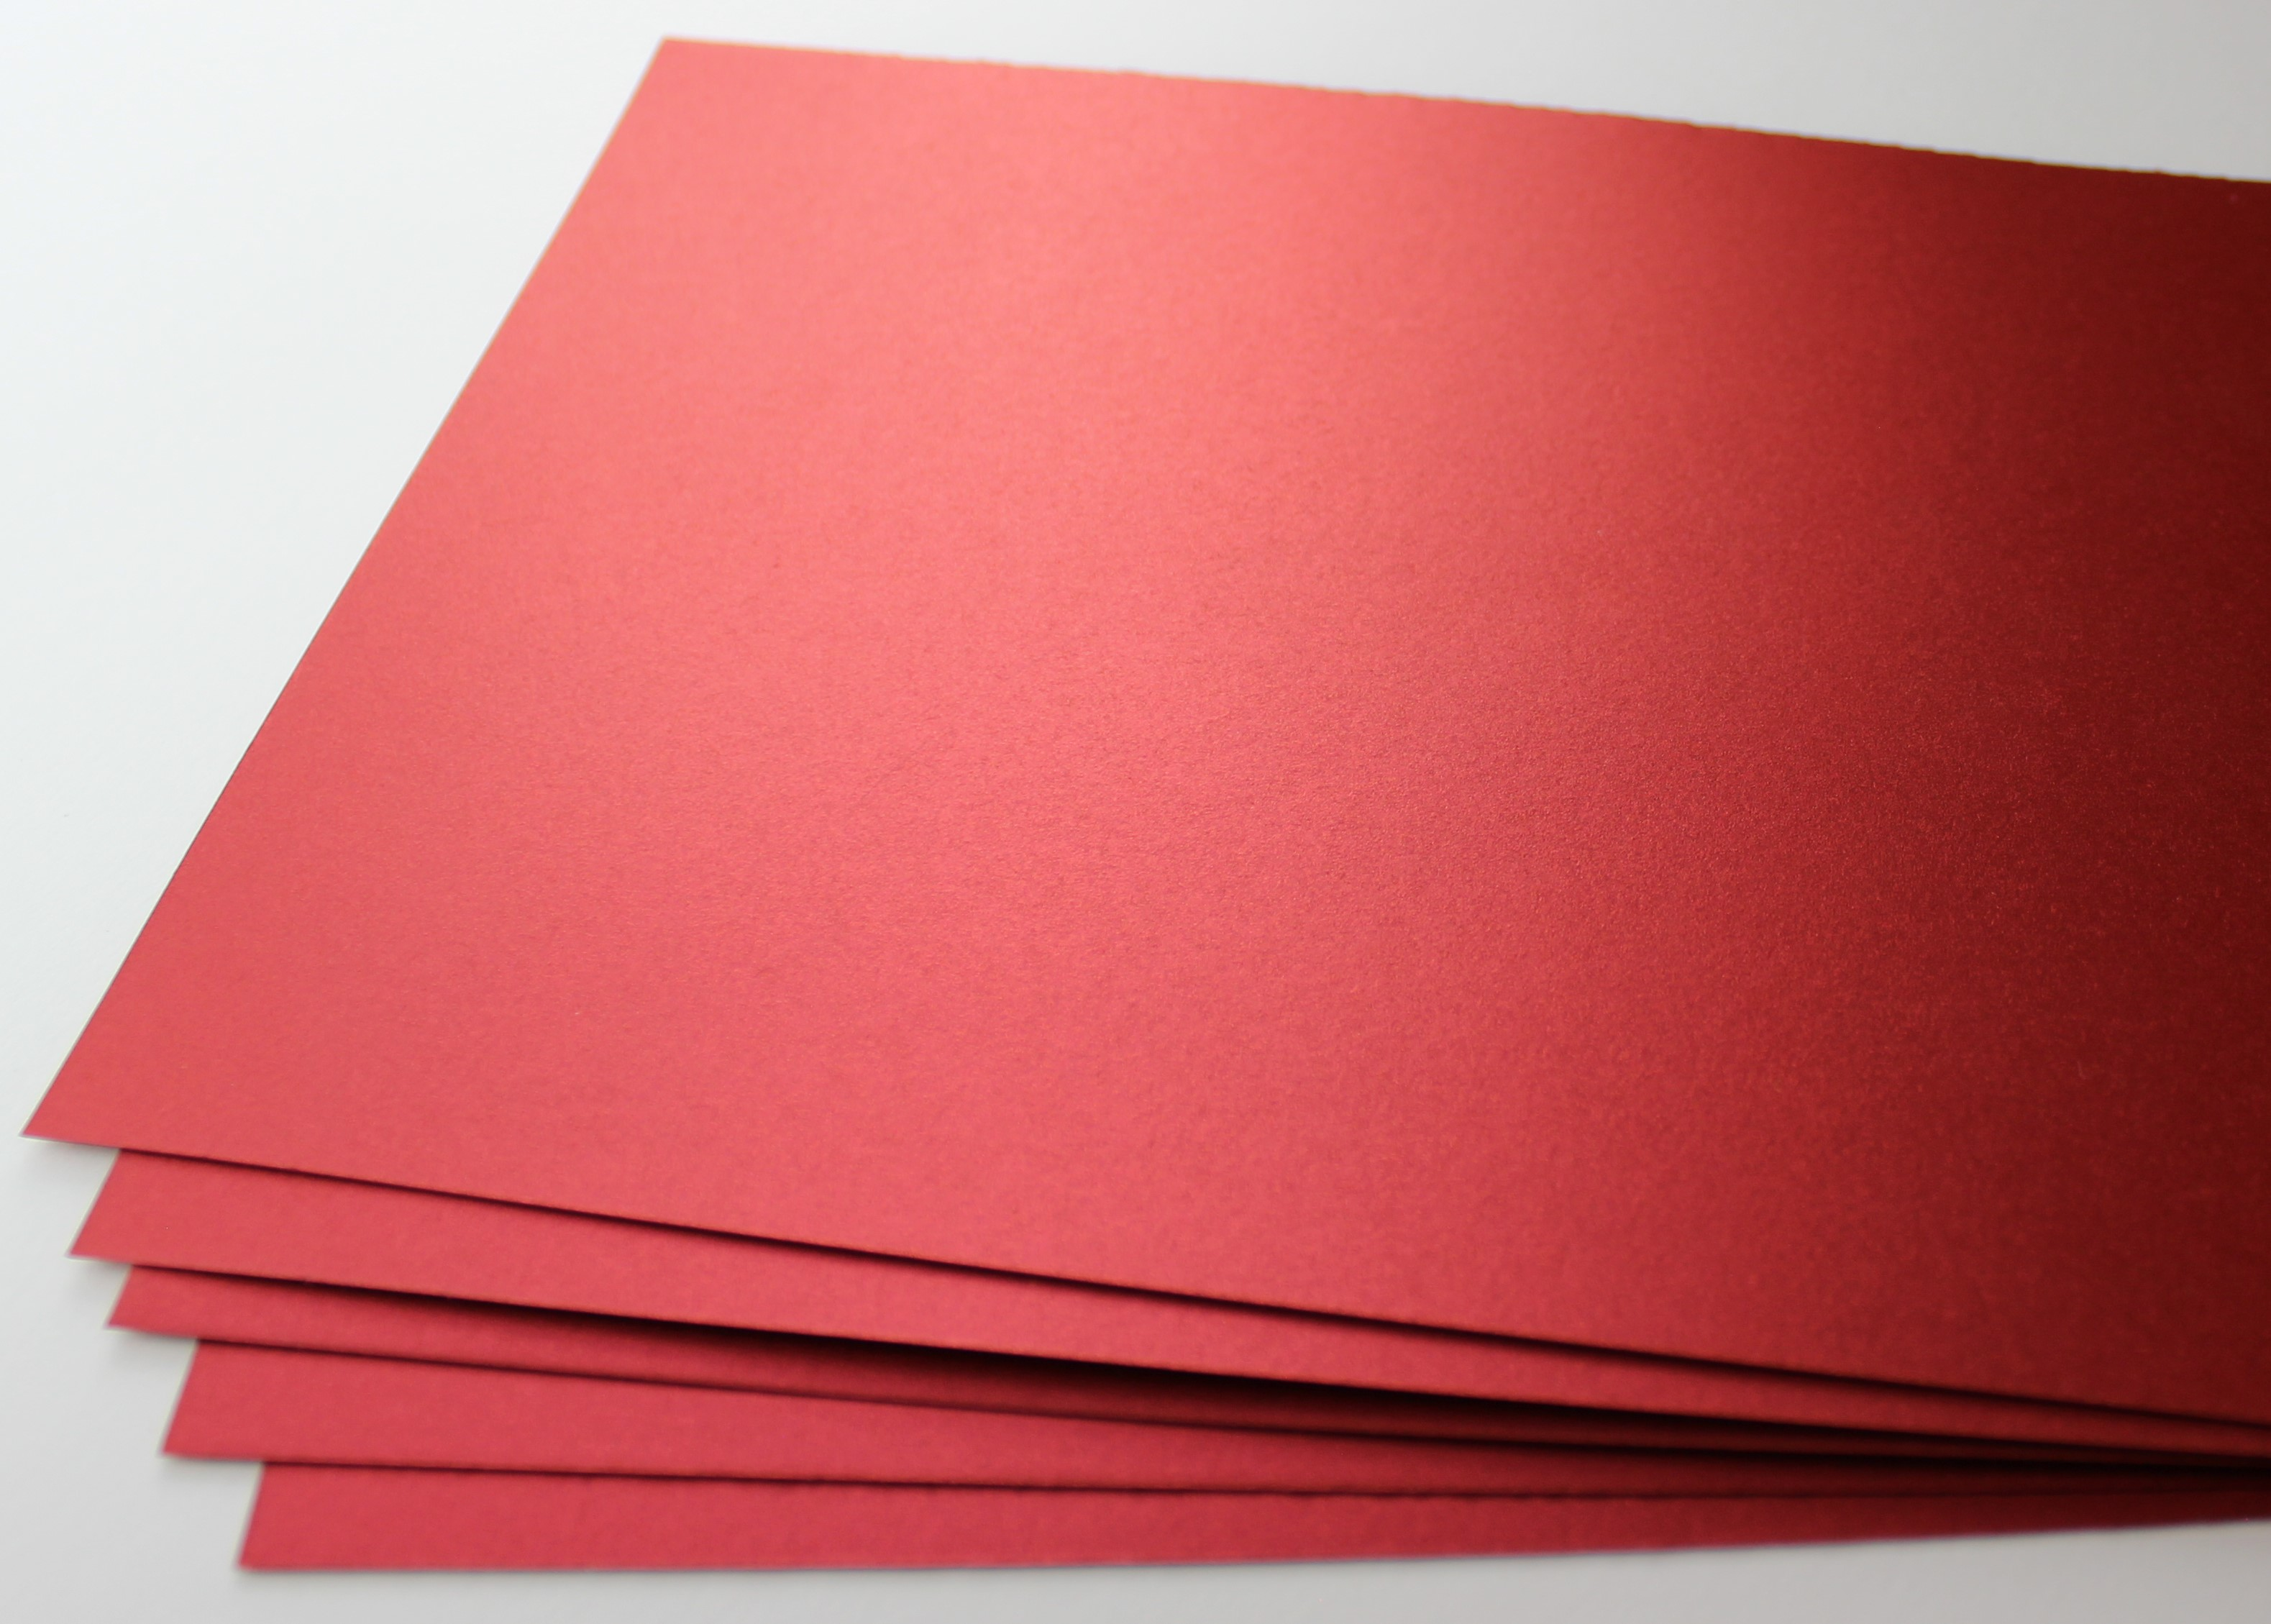 100 Blatt A5 (148x210mm) Inapa Shyne Papier 250 g/qm red diamond